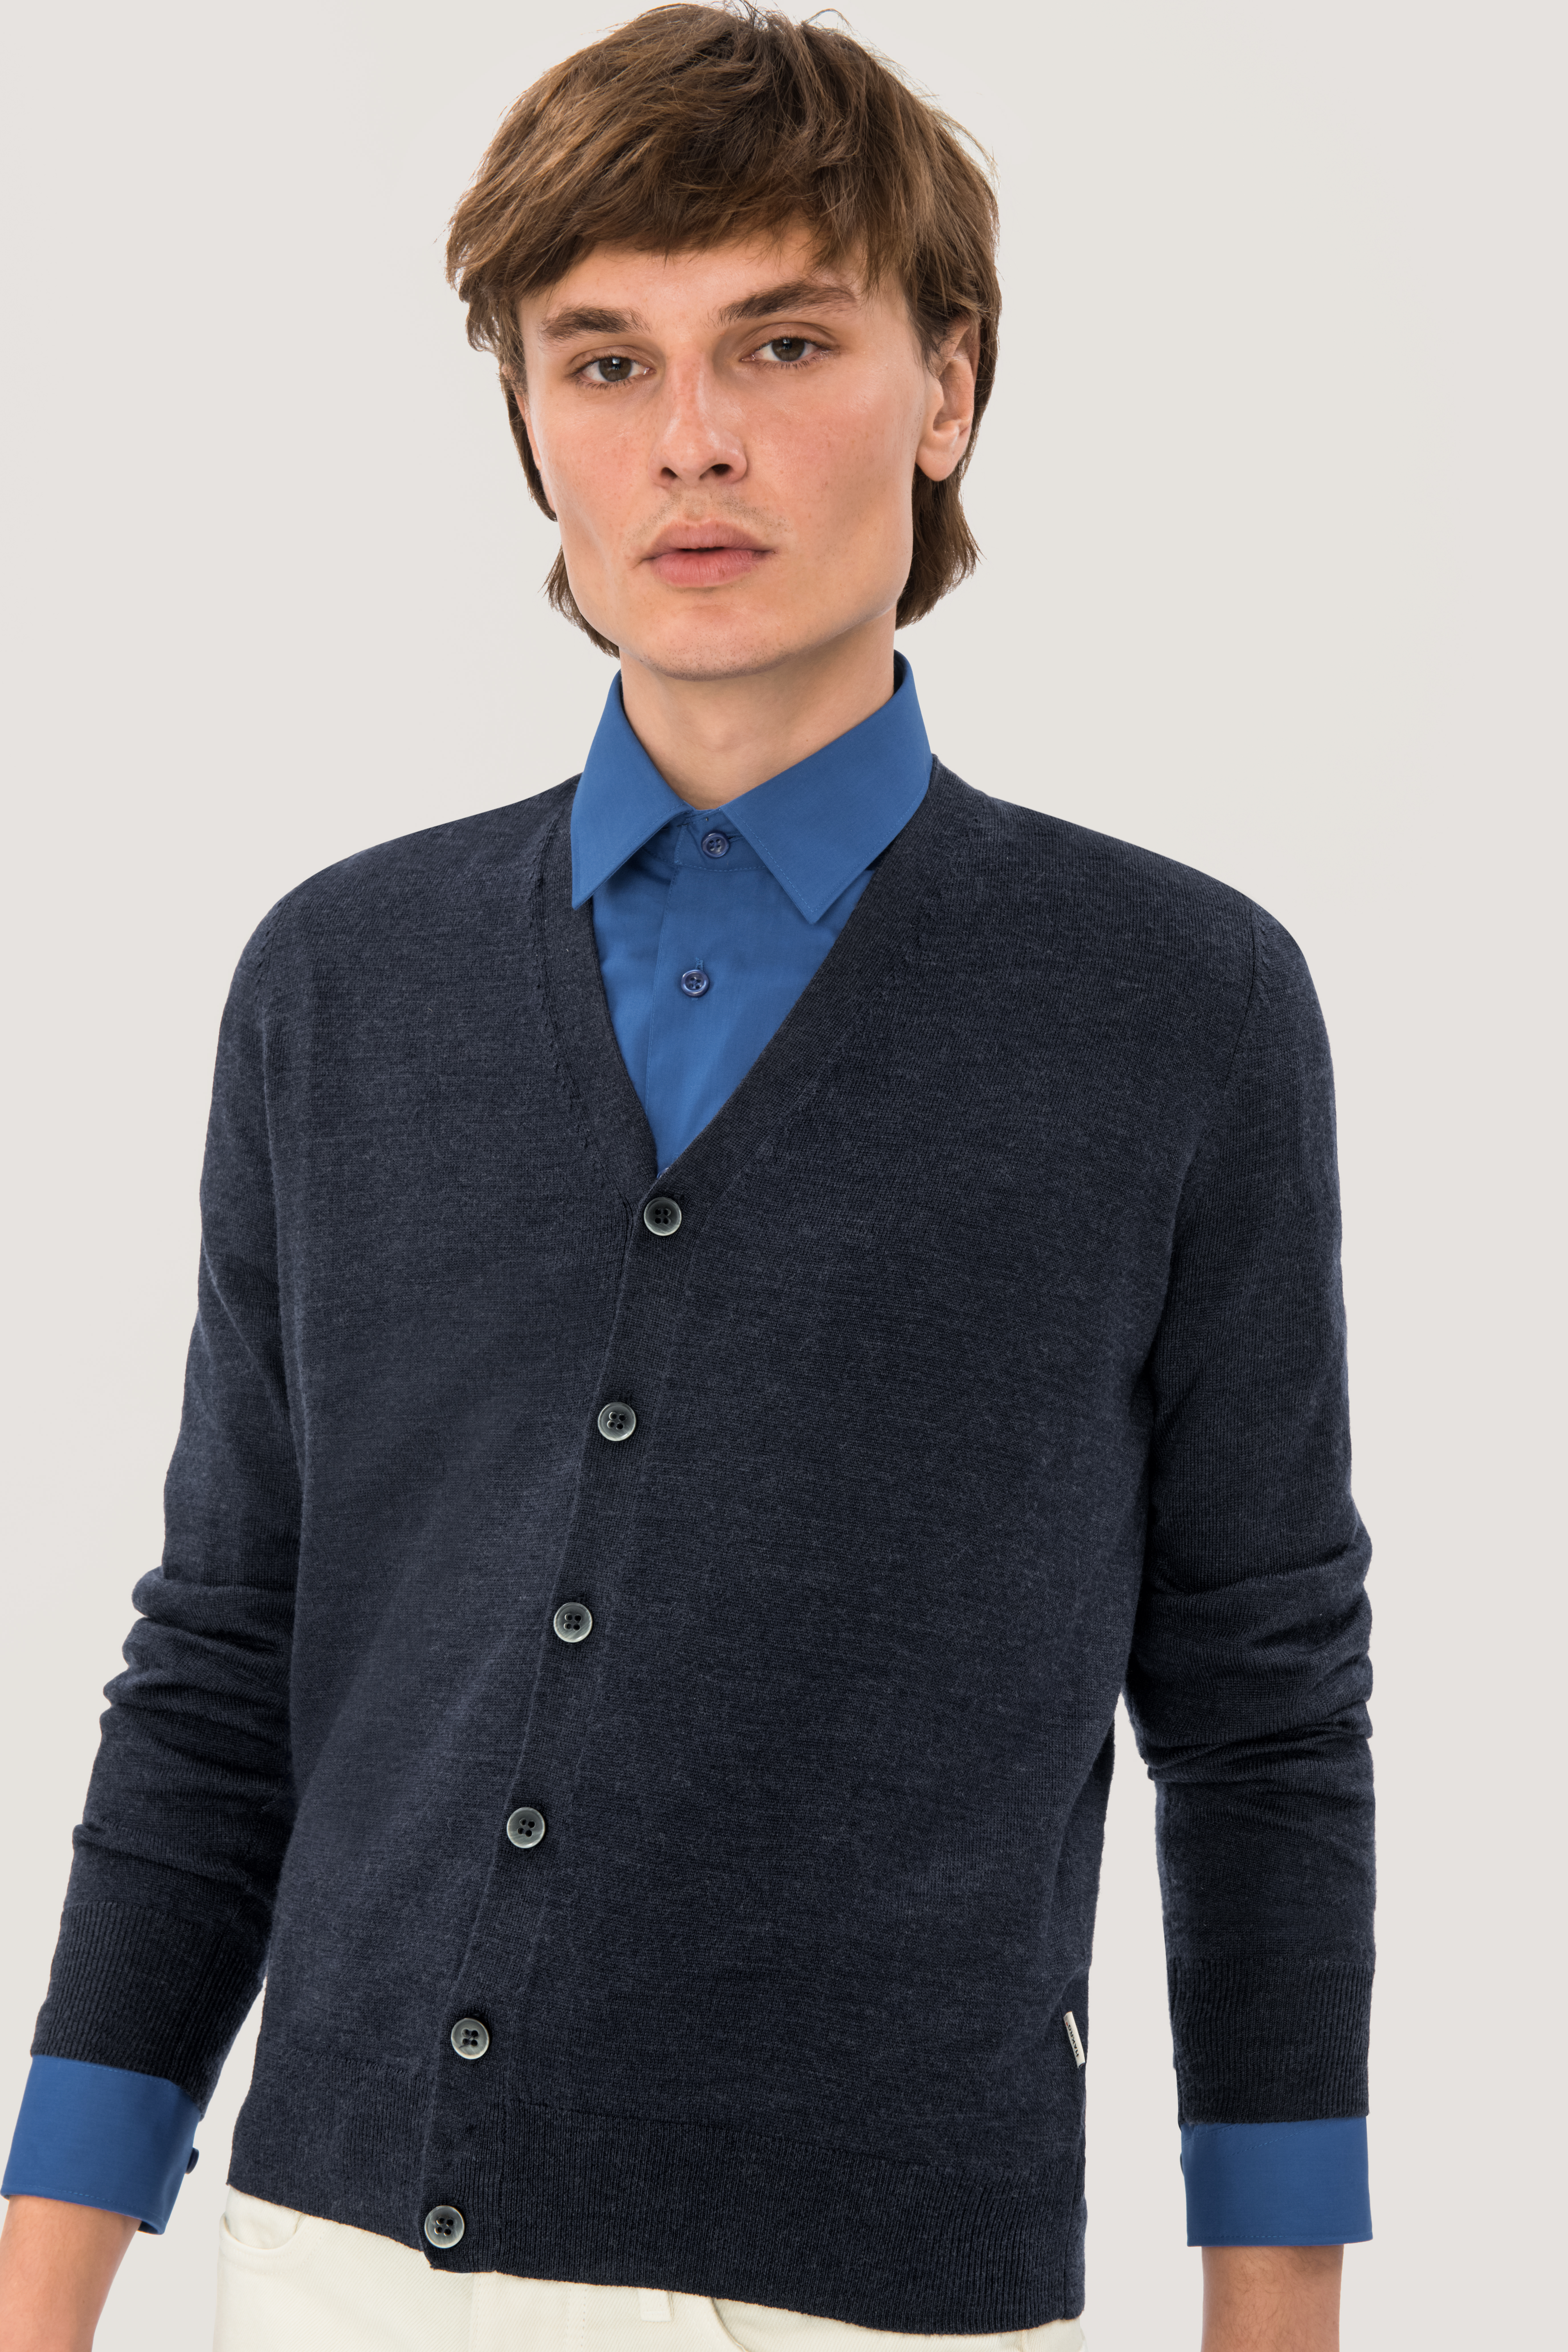 NO. 150 HAKRO Cardigan Merino-Wool